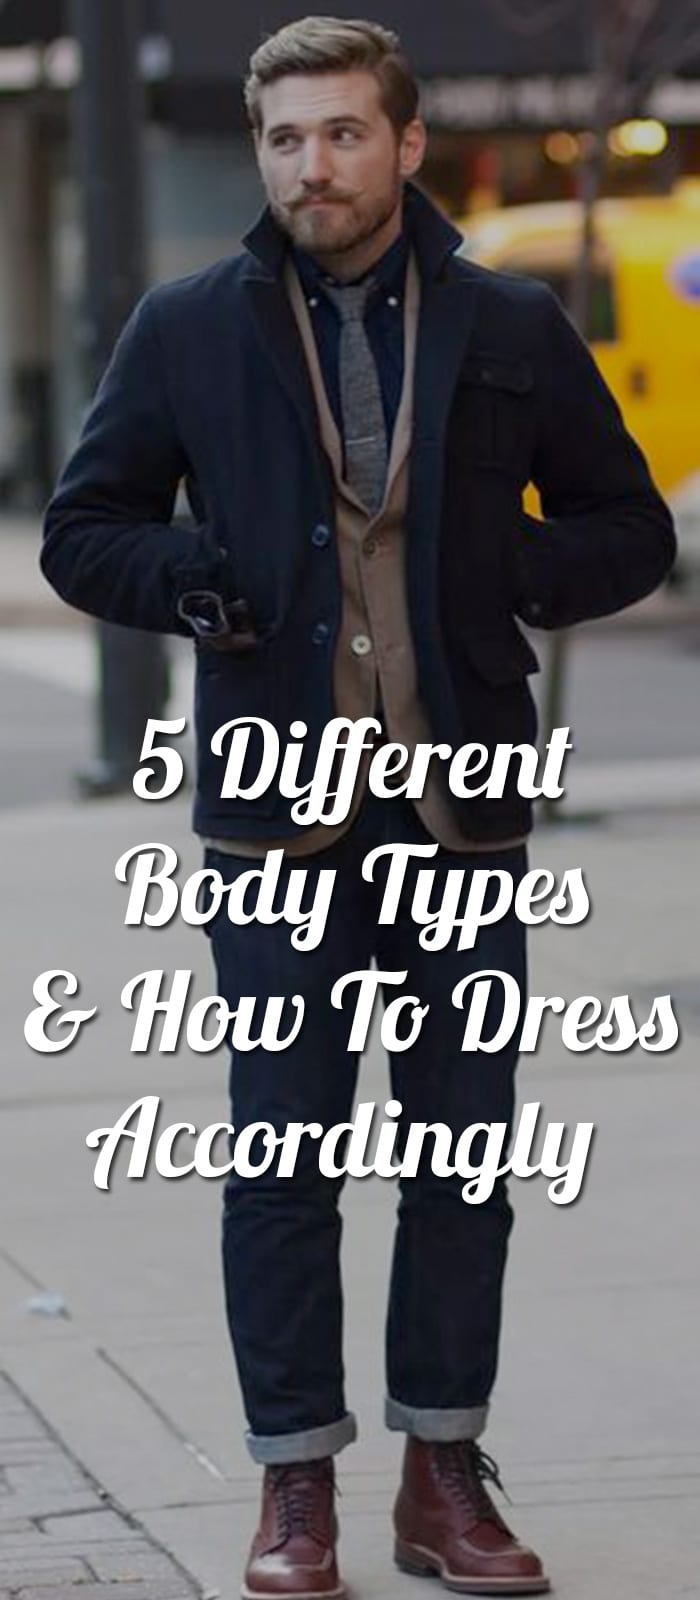 5-Different-Body-Types-&-How-To-Dress-Accordingly-.